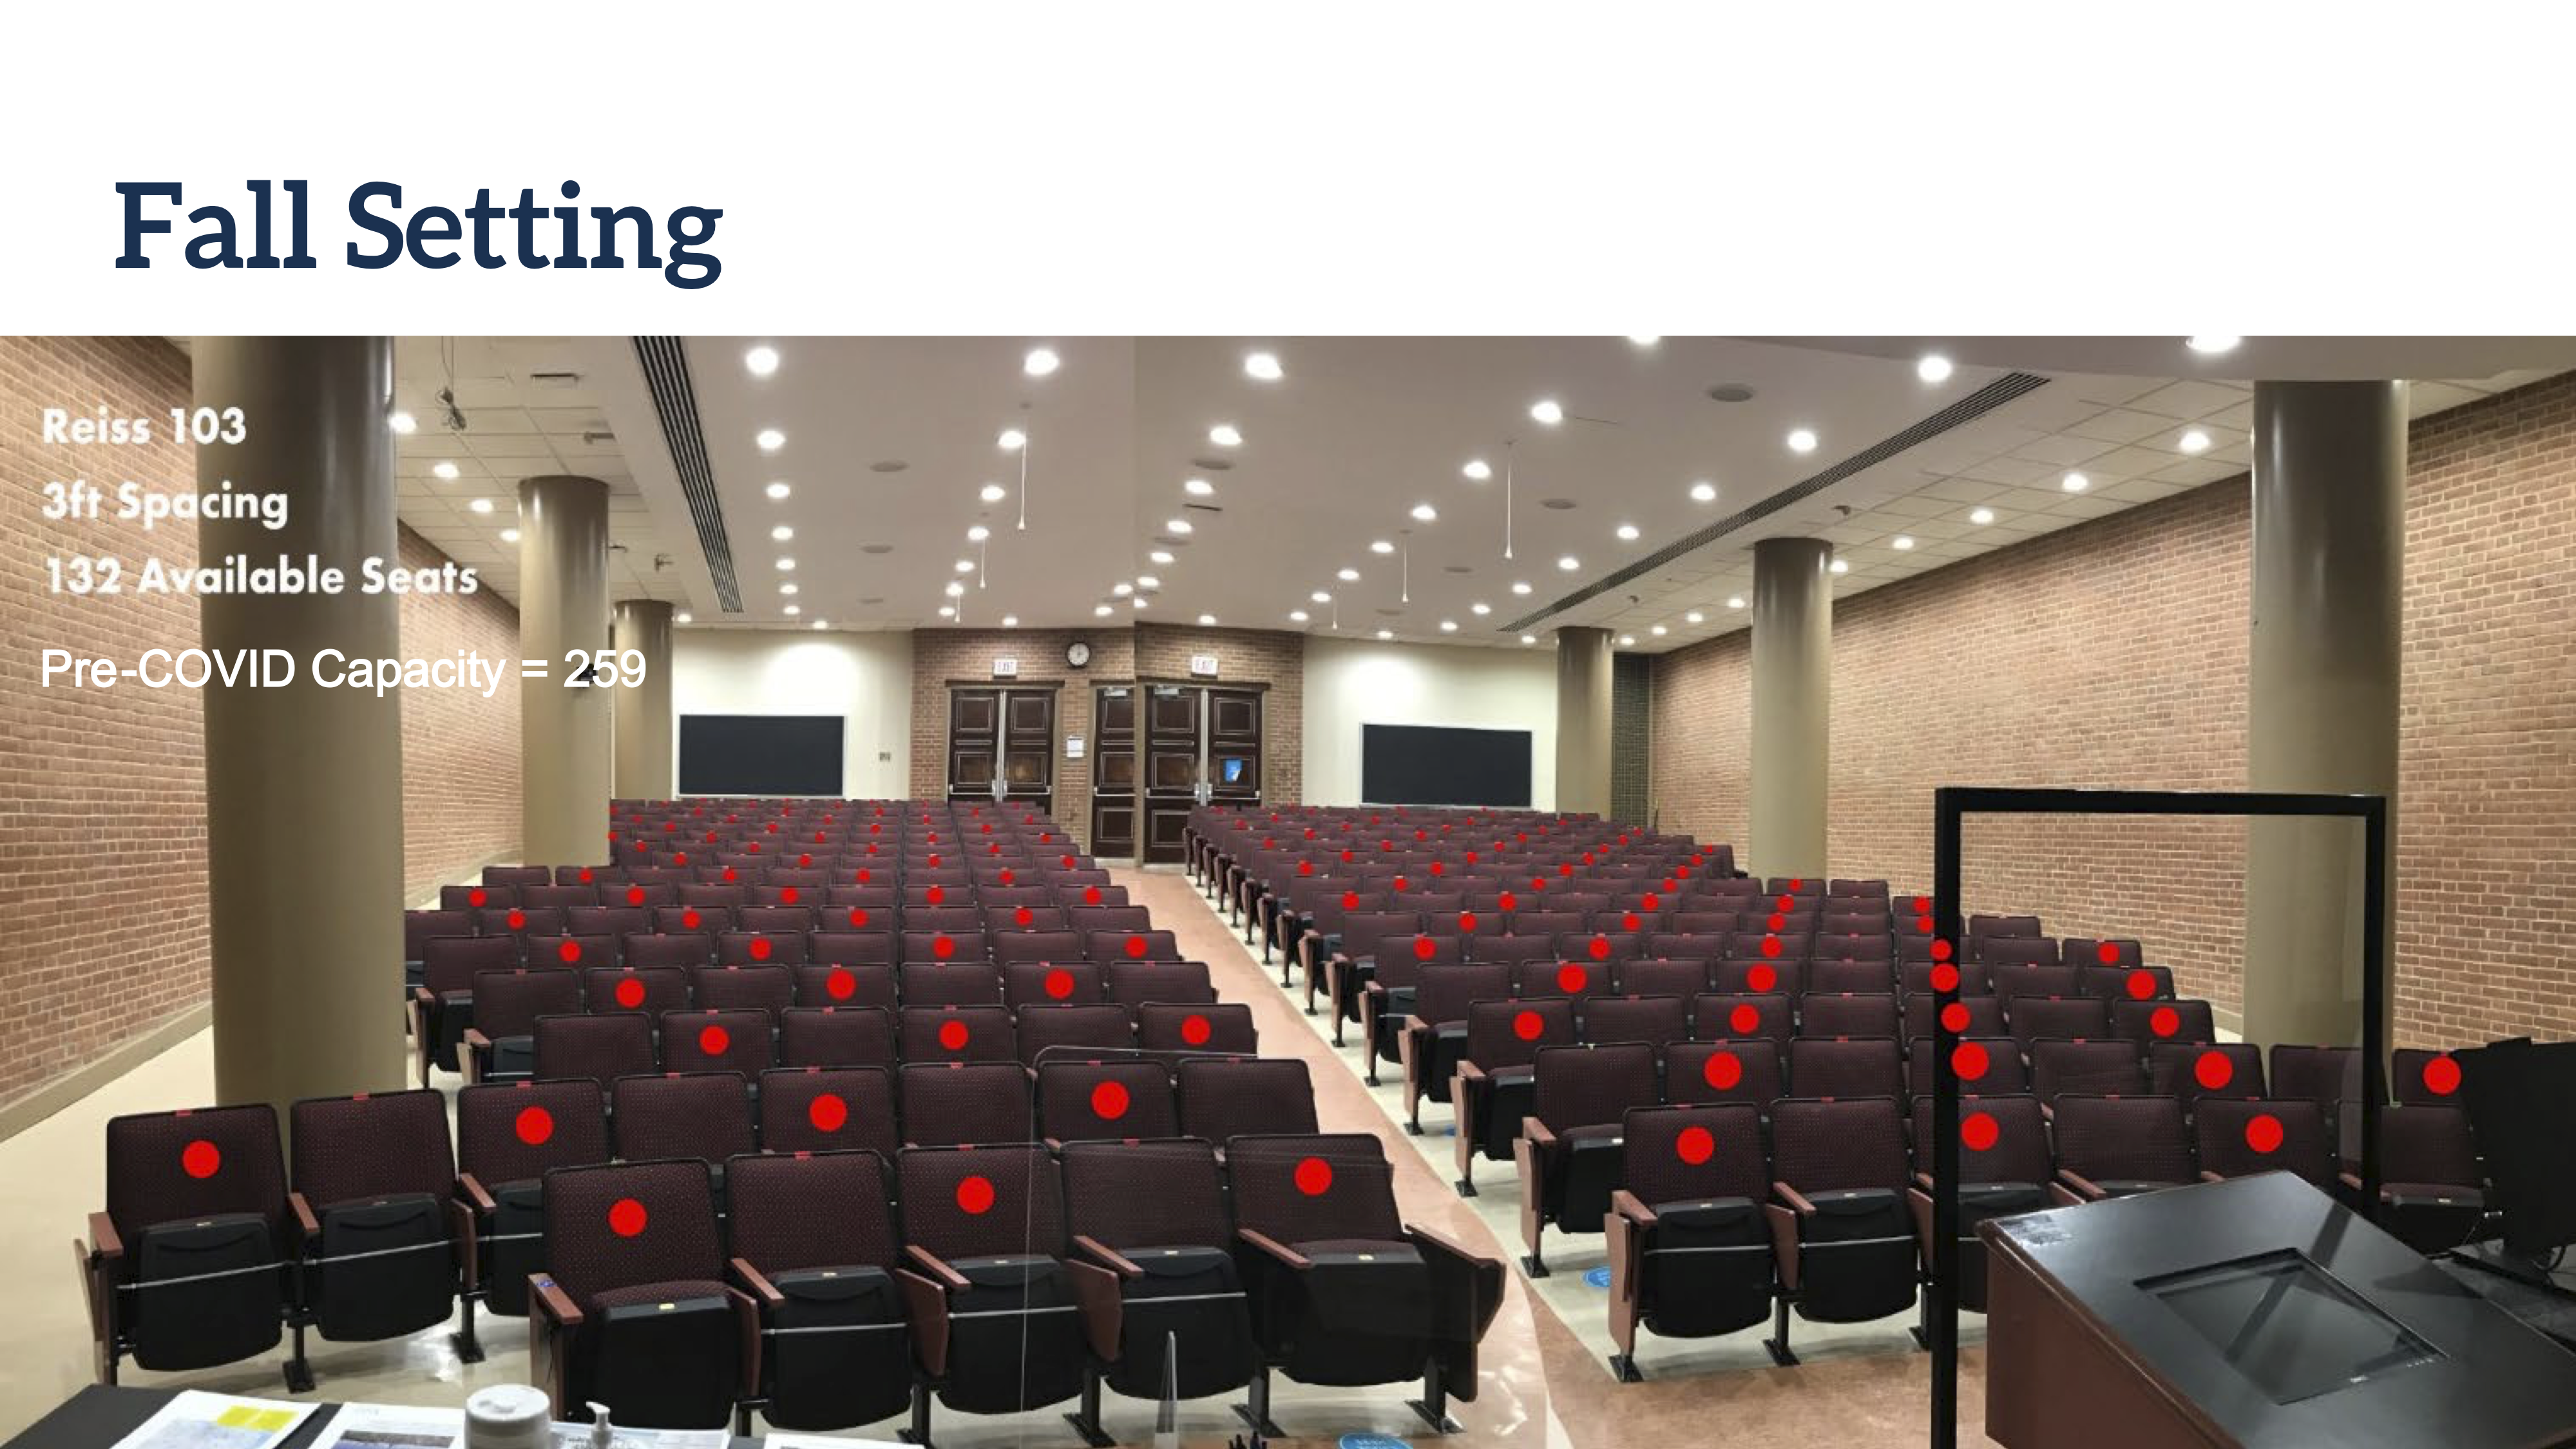 Picture of 3ft Spacing in Lecture Hall and Auditoria